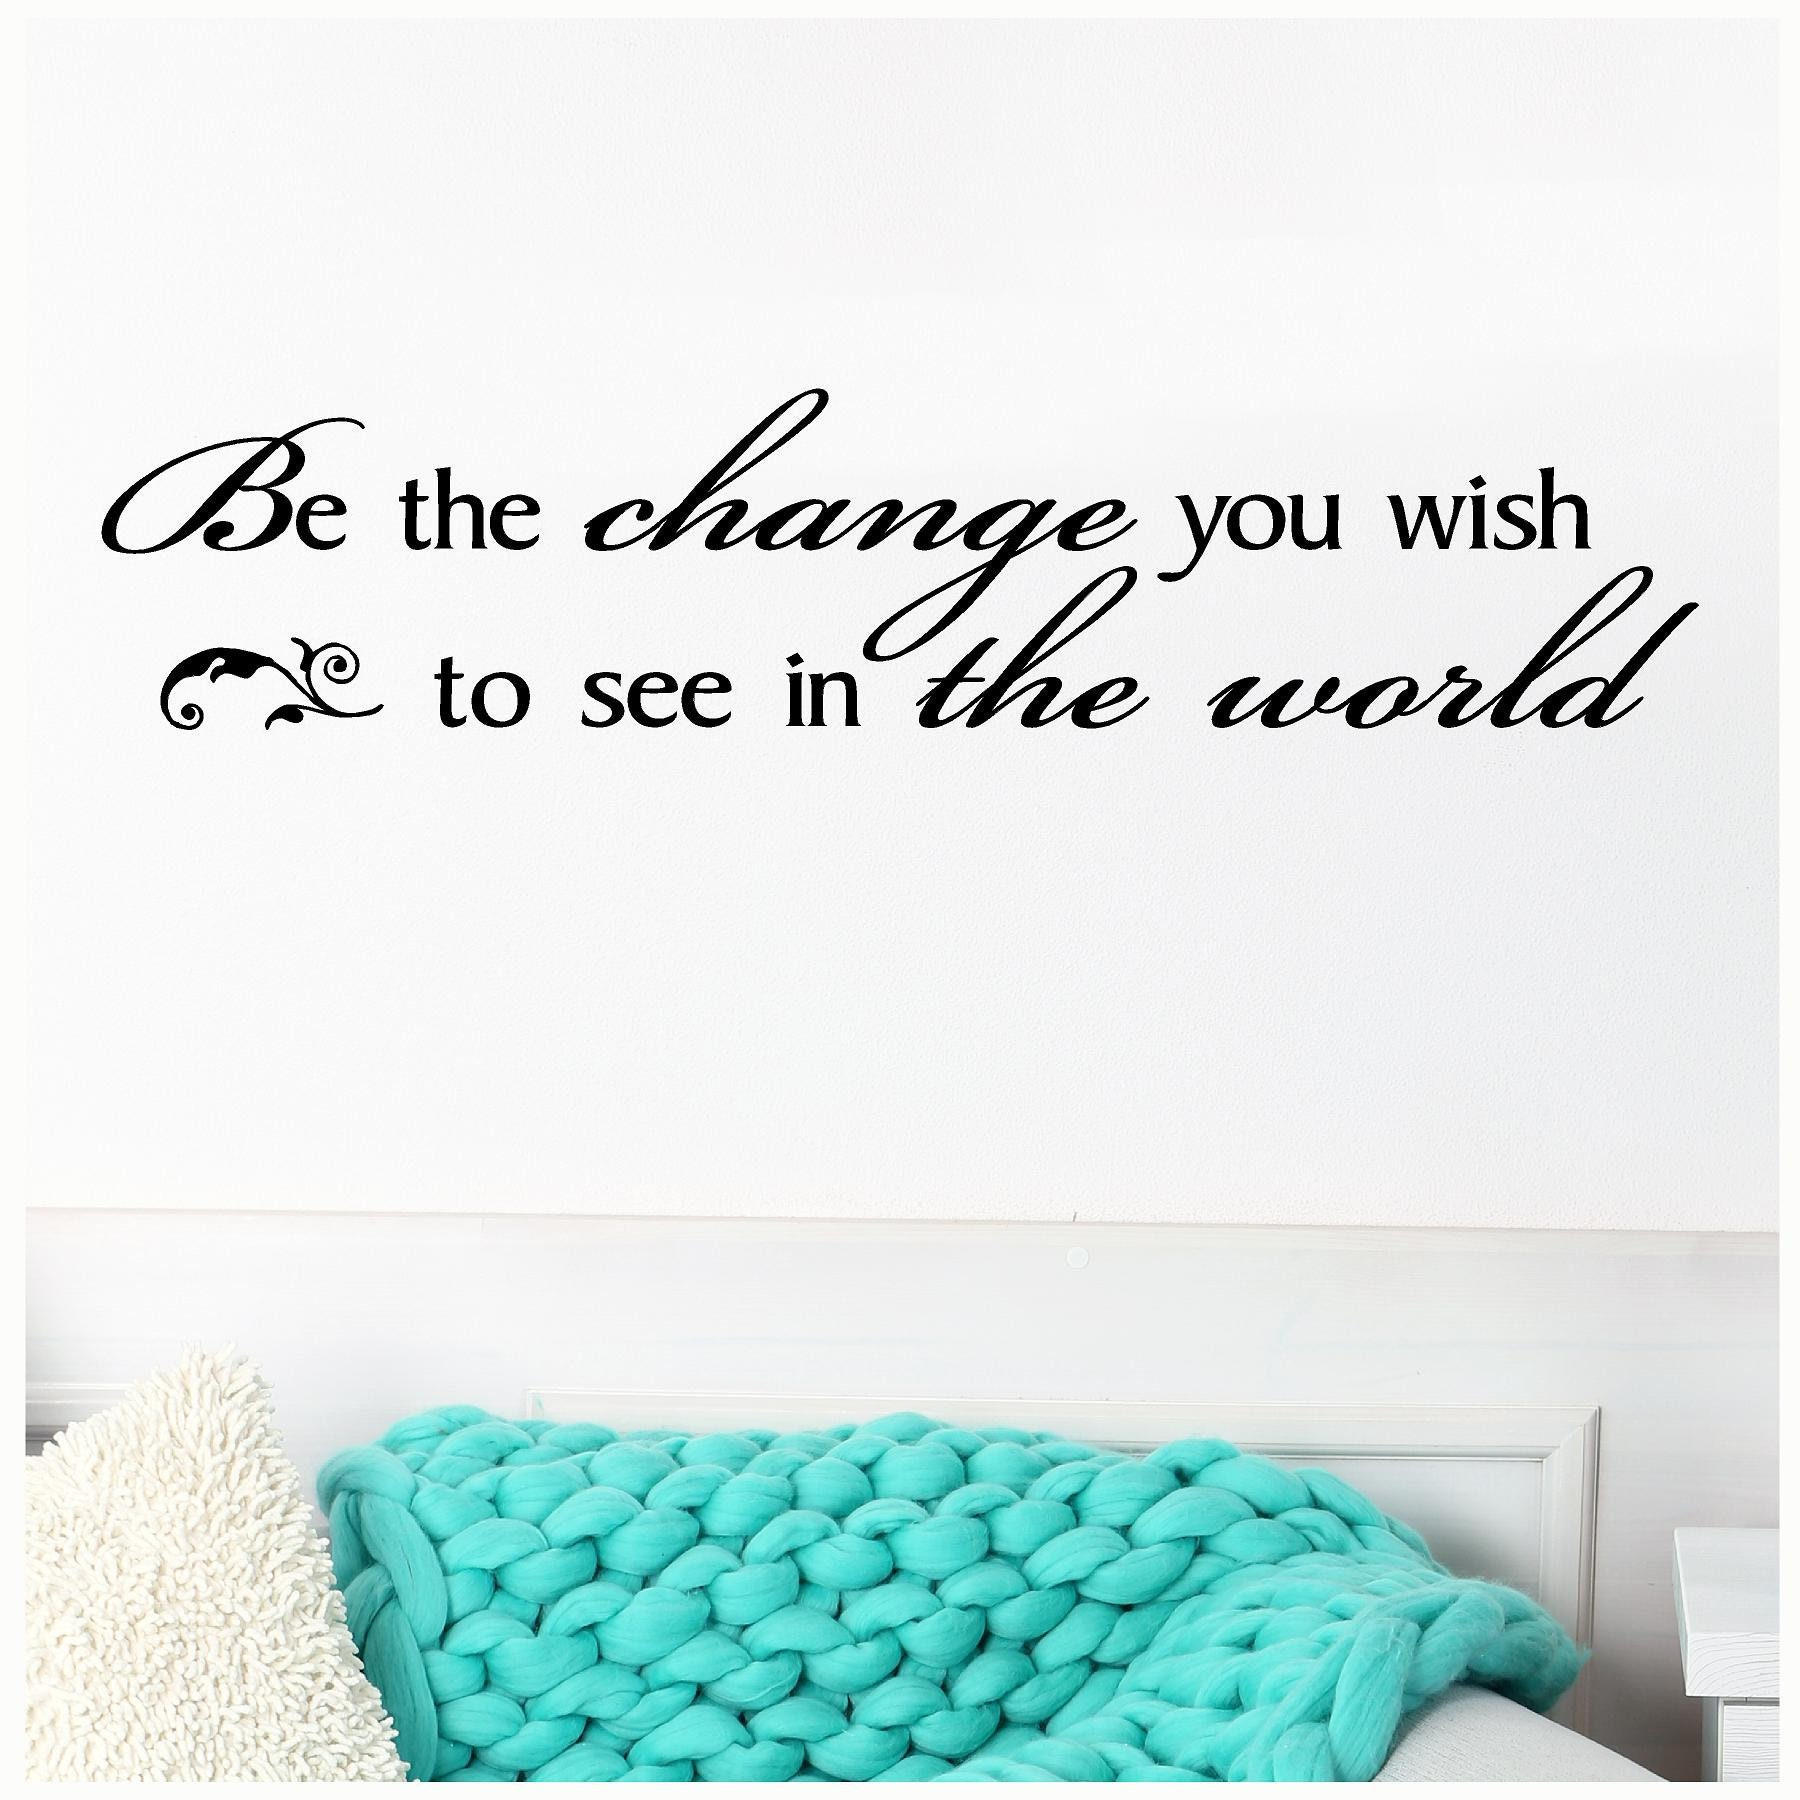 Be The Change You Wish To See In This World Vinyl Decal Free Shipping 1540